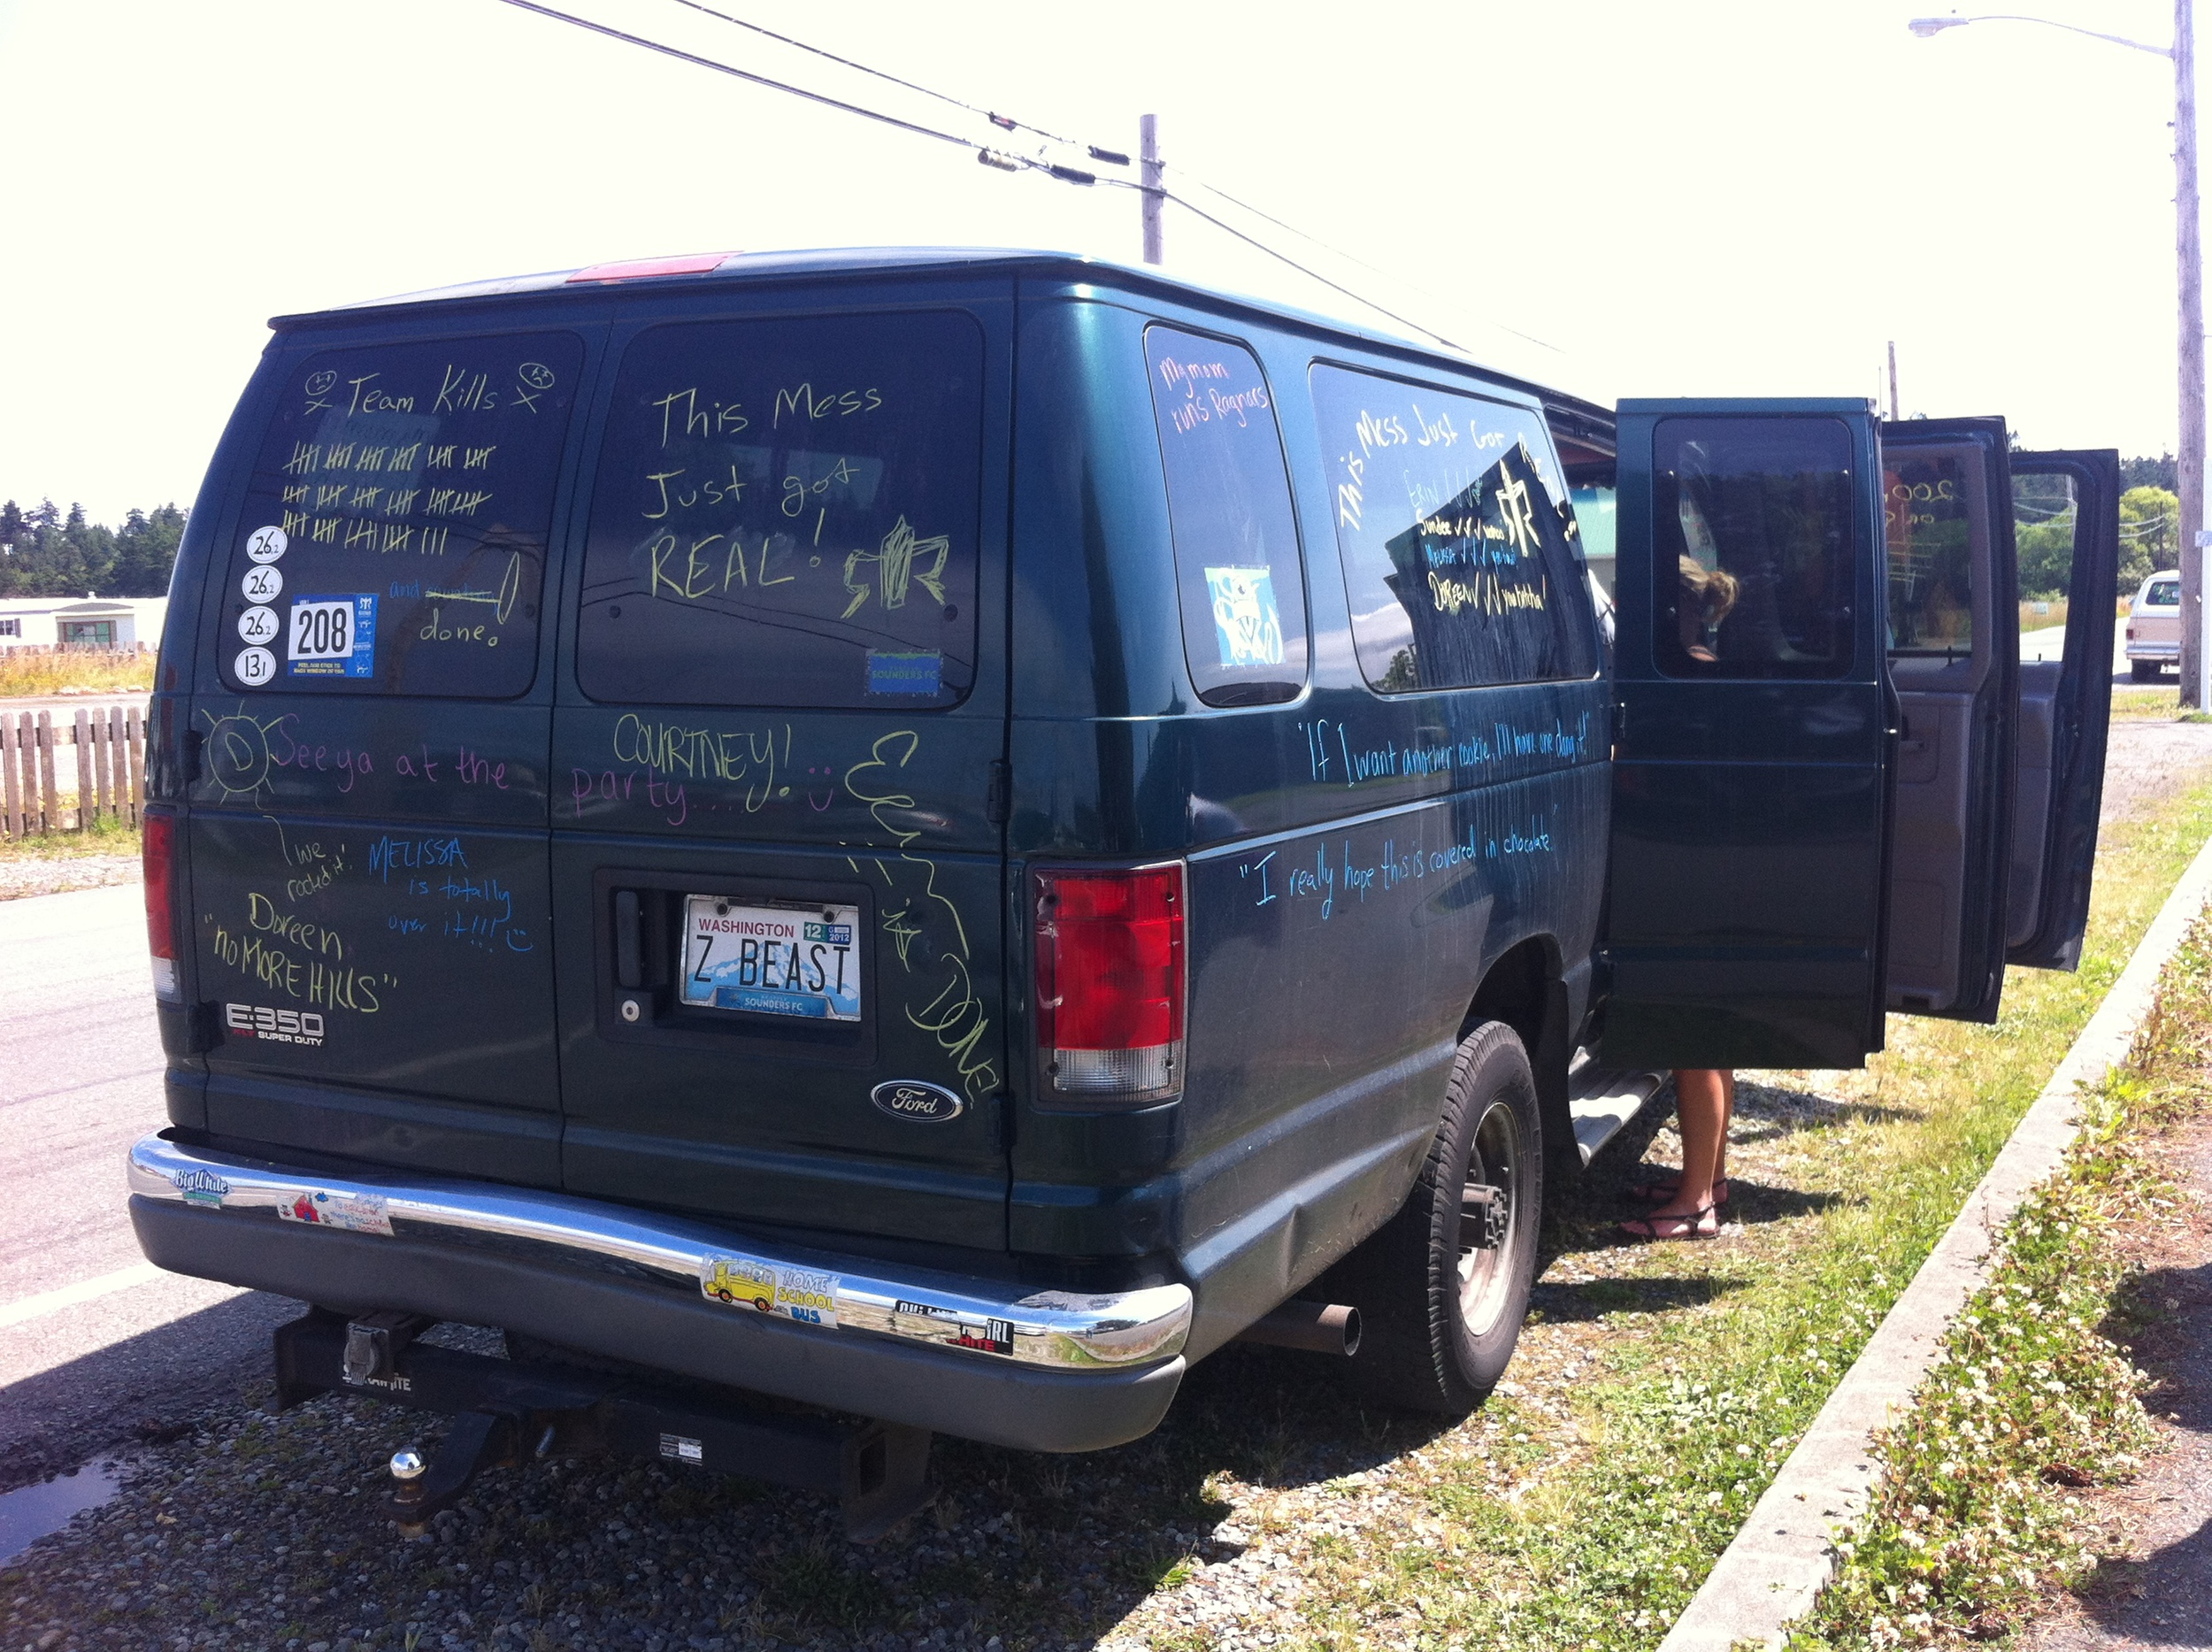 Tracking our kills and progress on the back of the van.